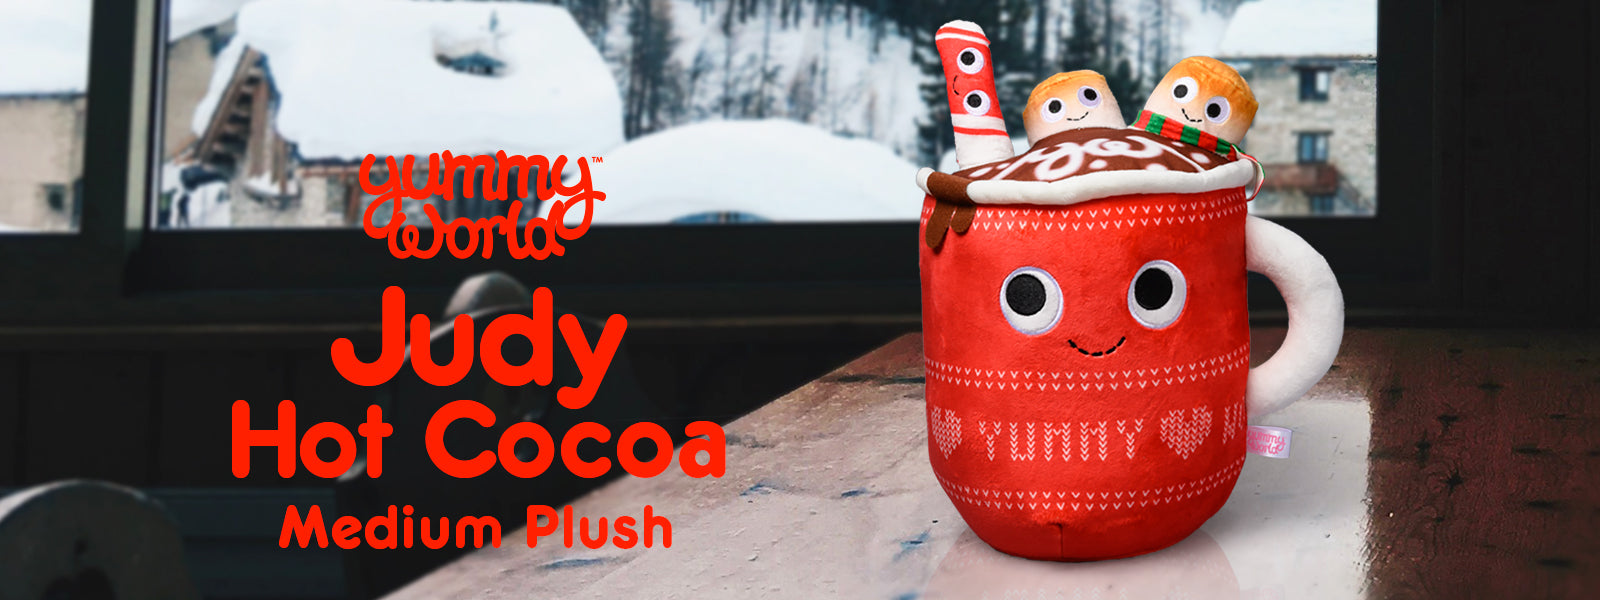 Kidrobot x Yummy World Hot Cocoa Plush Toys